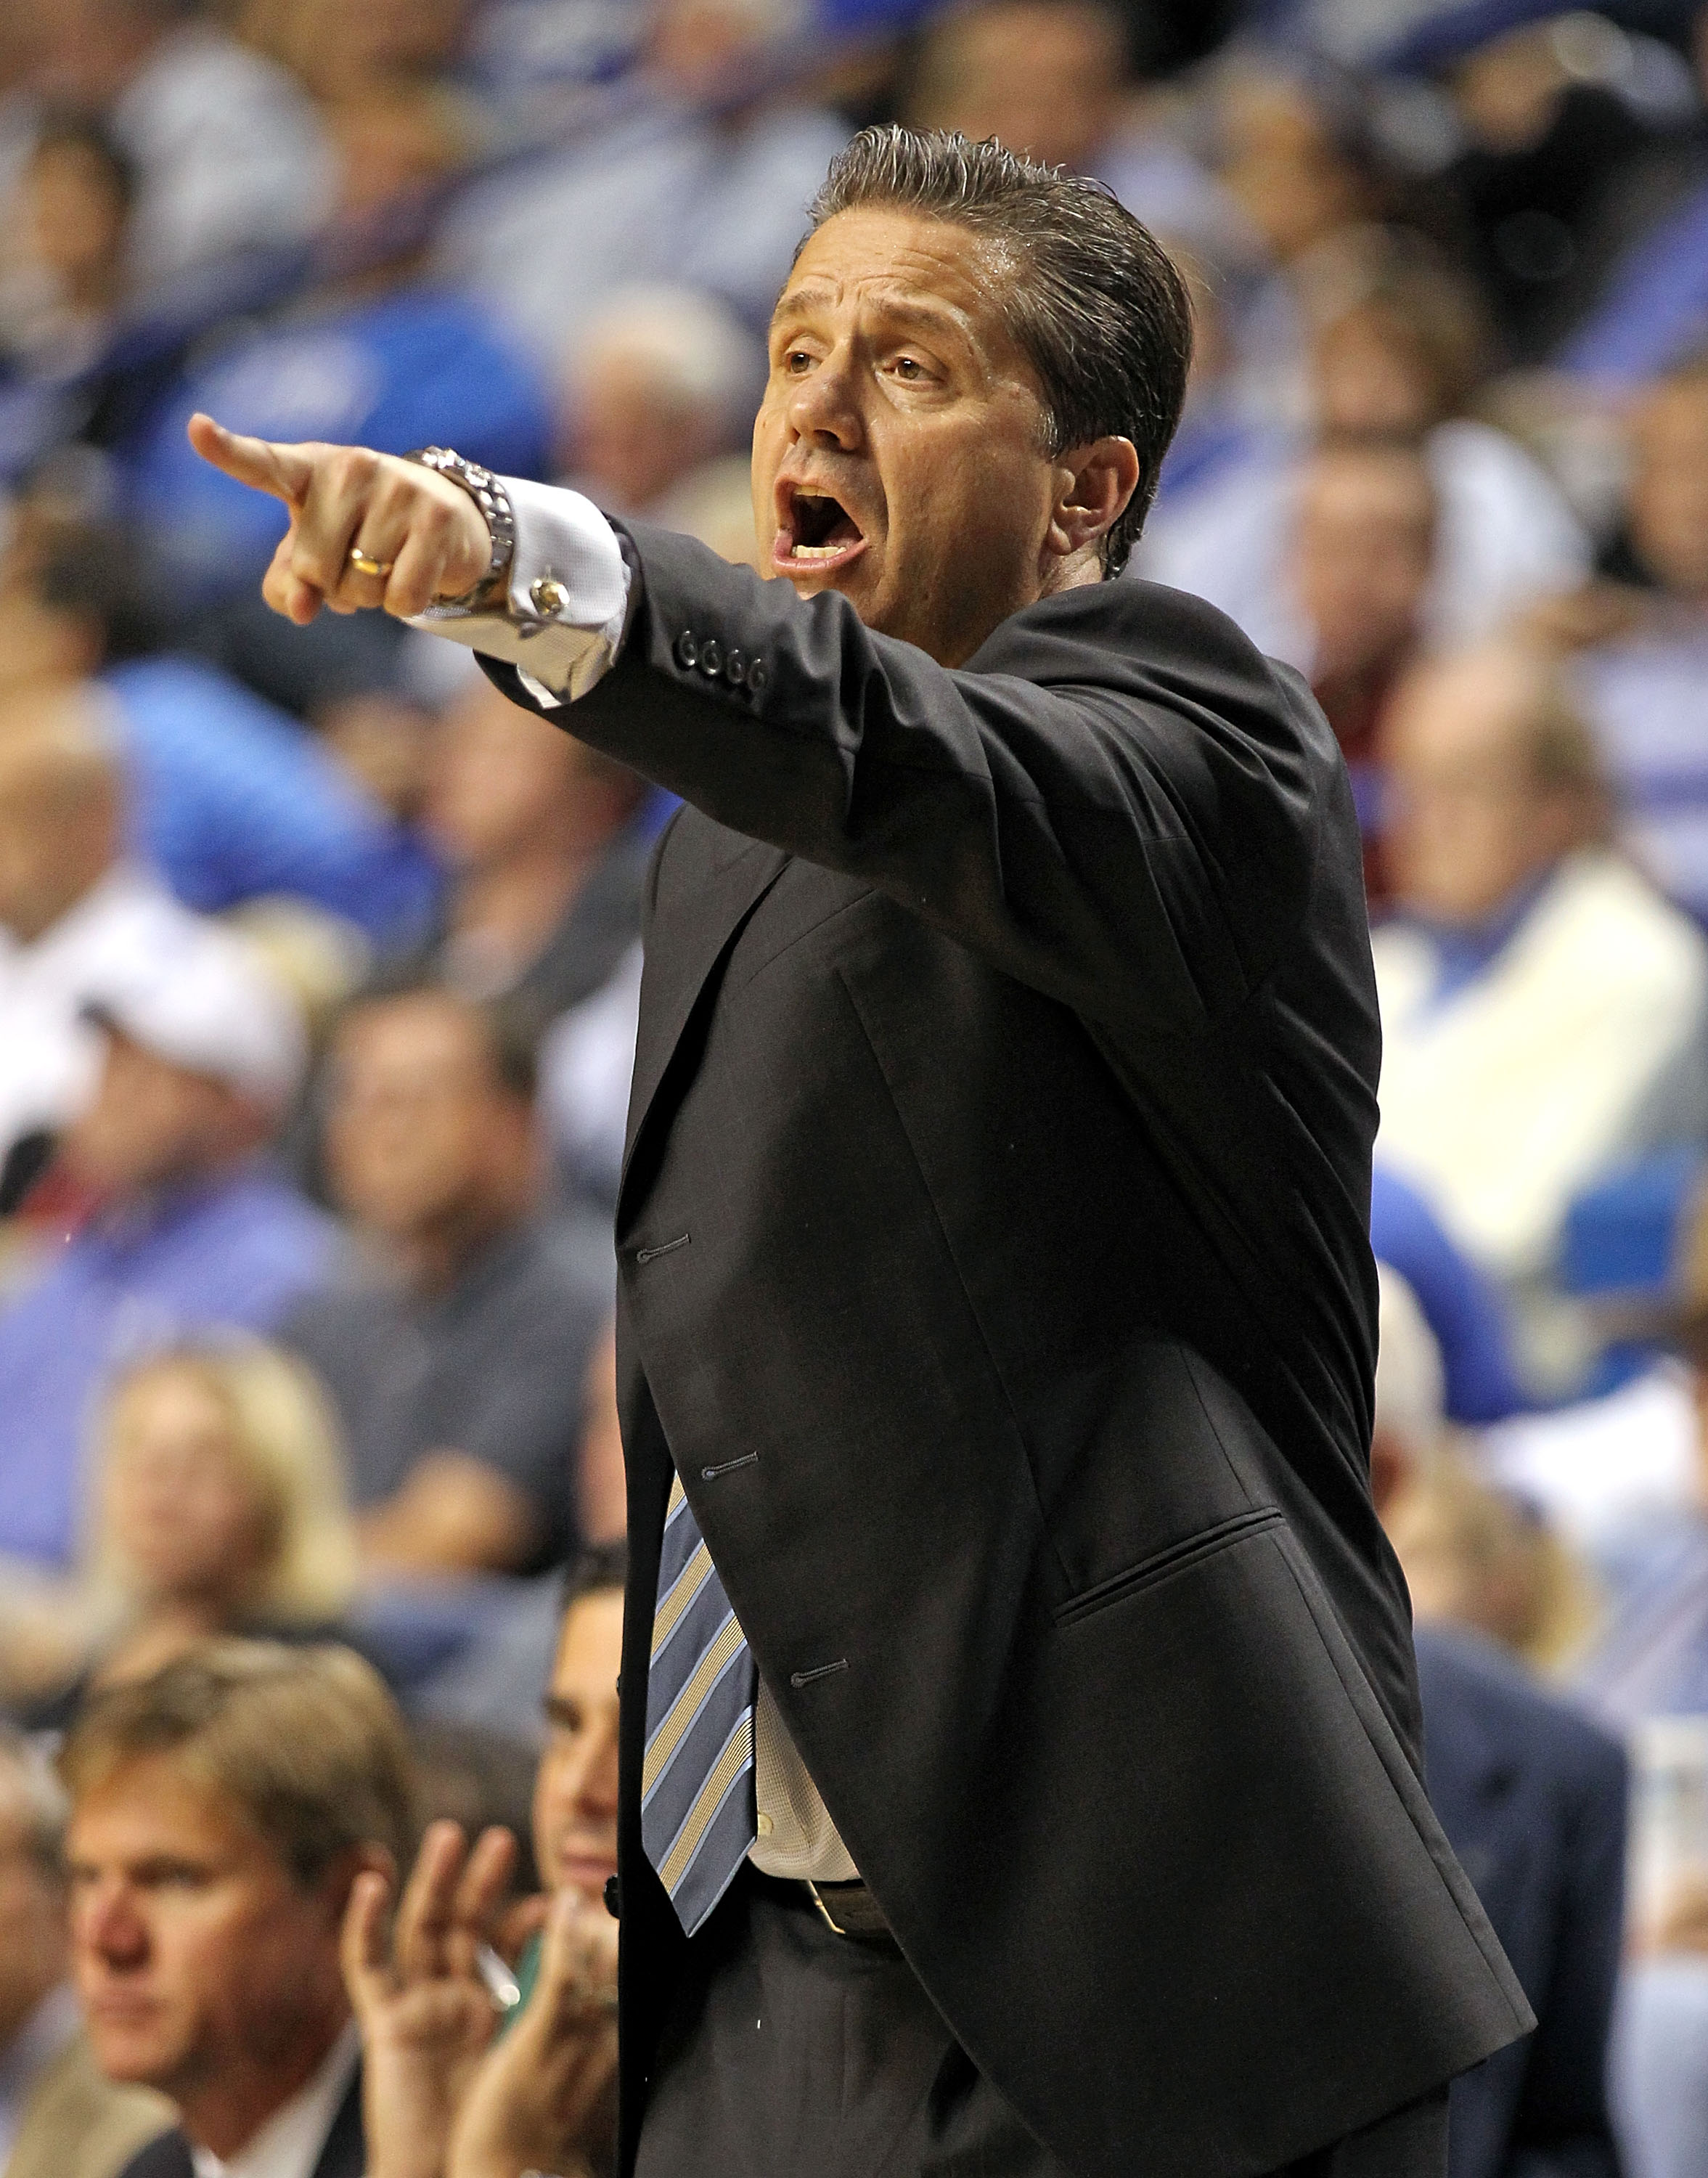 LEXINGTON, KY - NOVEMBER 12:  John Calipari the Head Coach of the Kentucky Wildcats gives   instructions to his team during the game against East Tennessee State Buccaneers at Rupp Arena on November 12, 2010 in Lexington, Kentucky.  (Photo by Andy Lyons/G